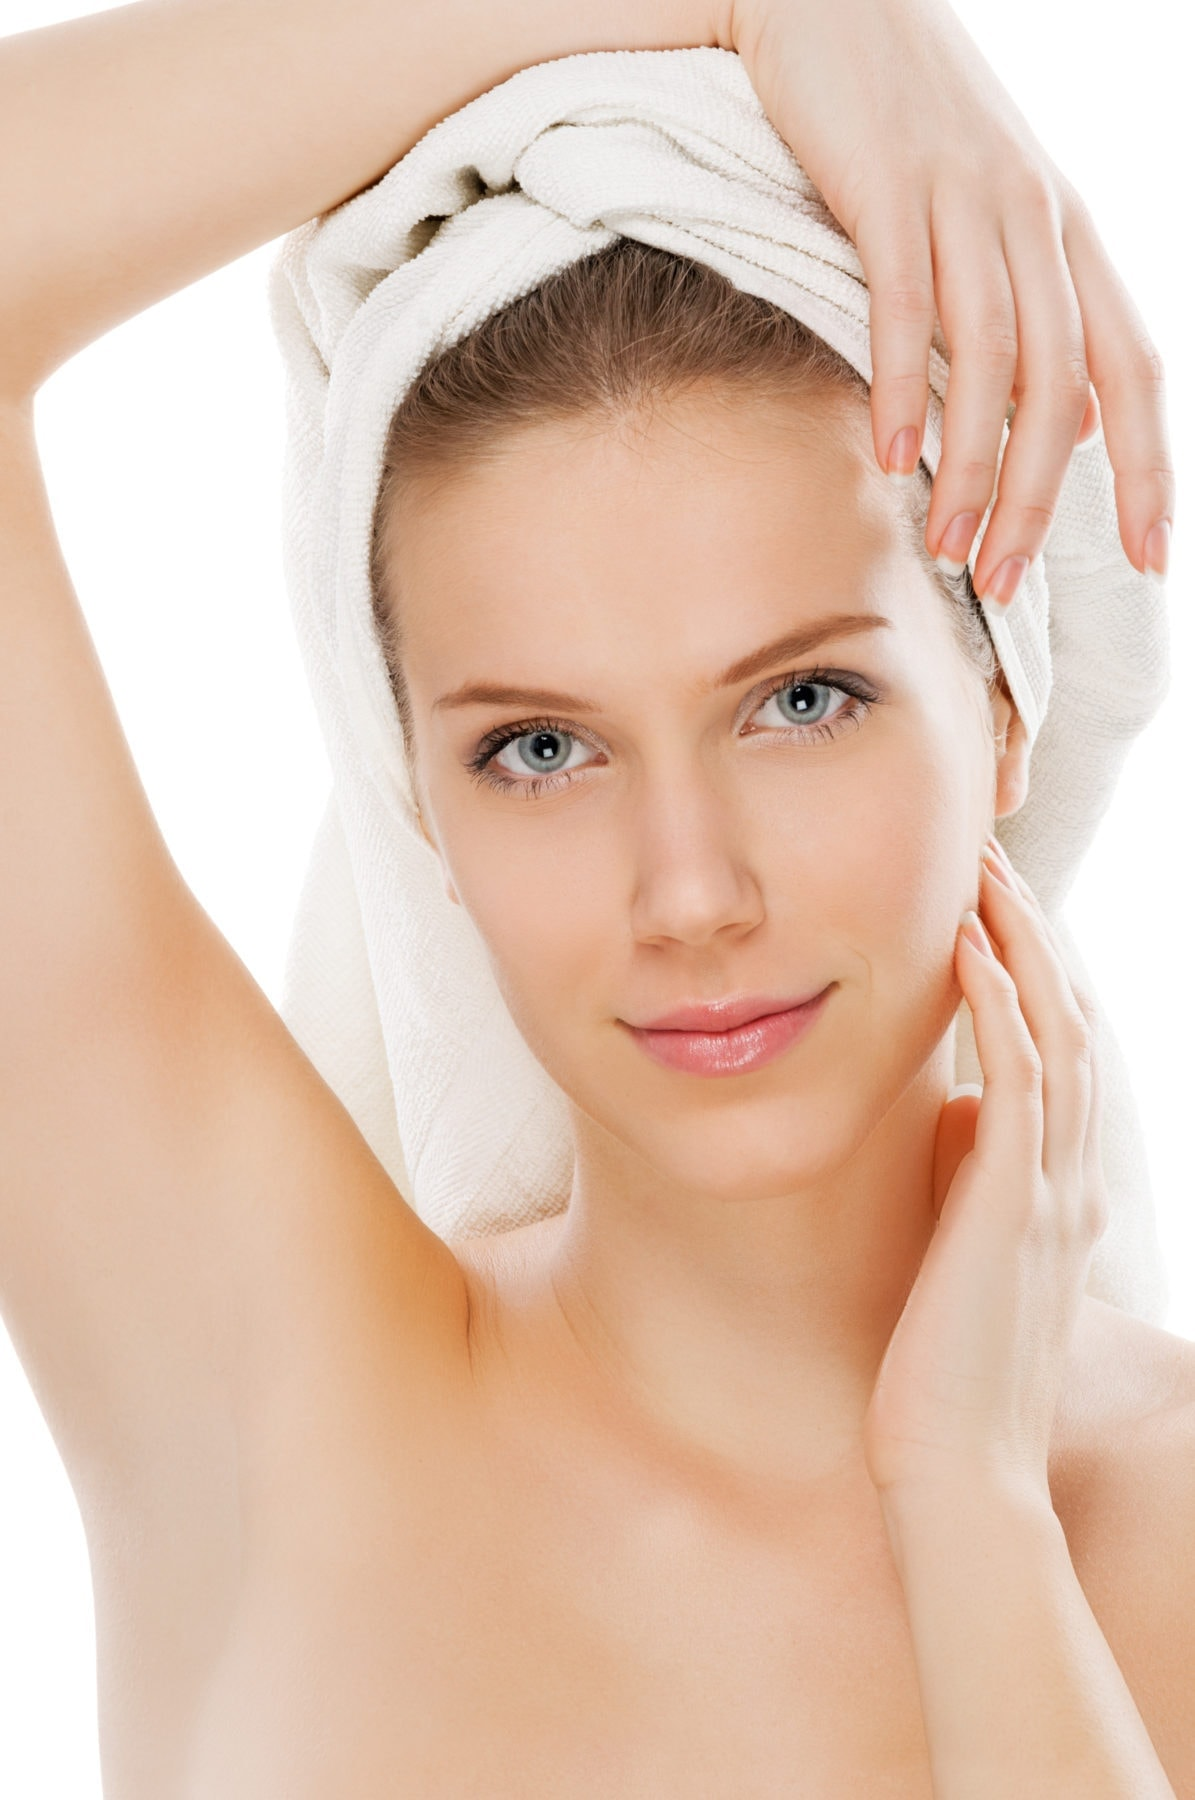 Underarm Wax At Le Petit Sanctuary, Taunton